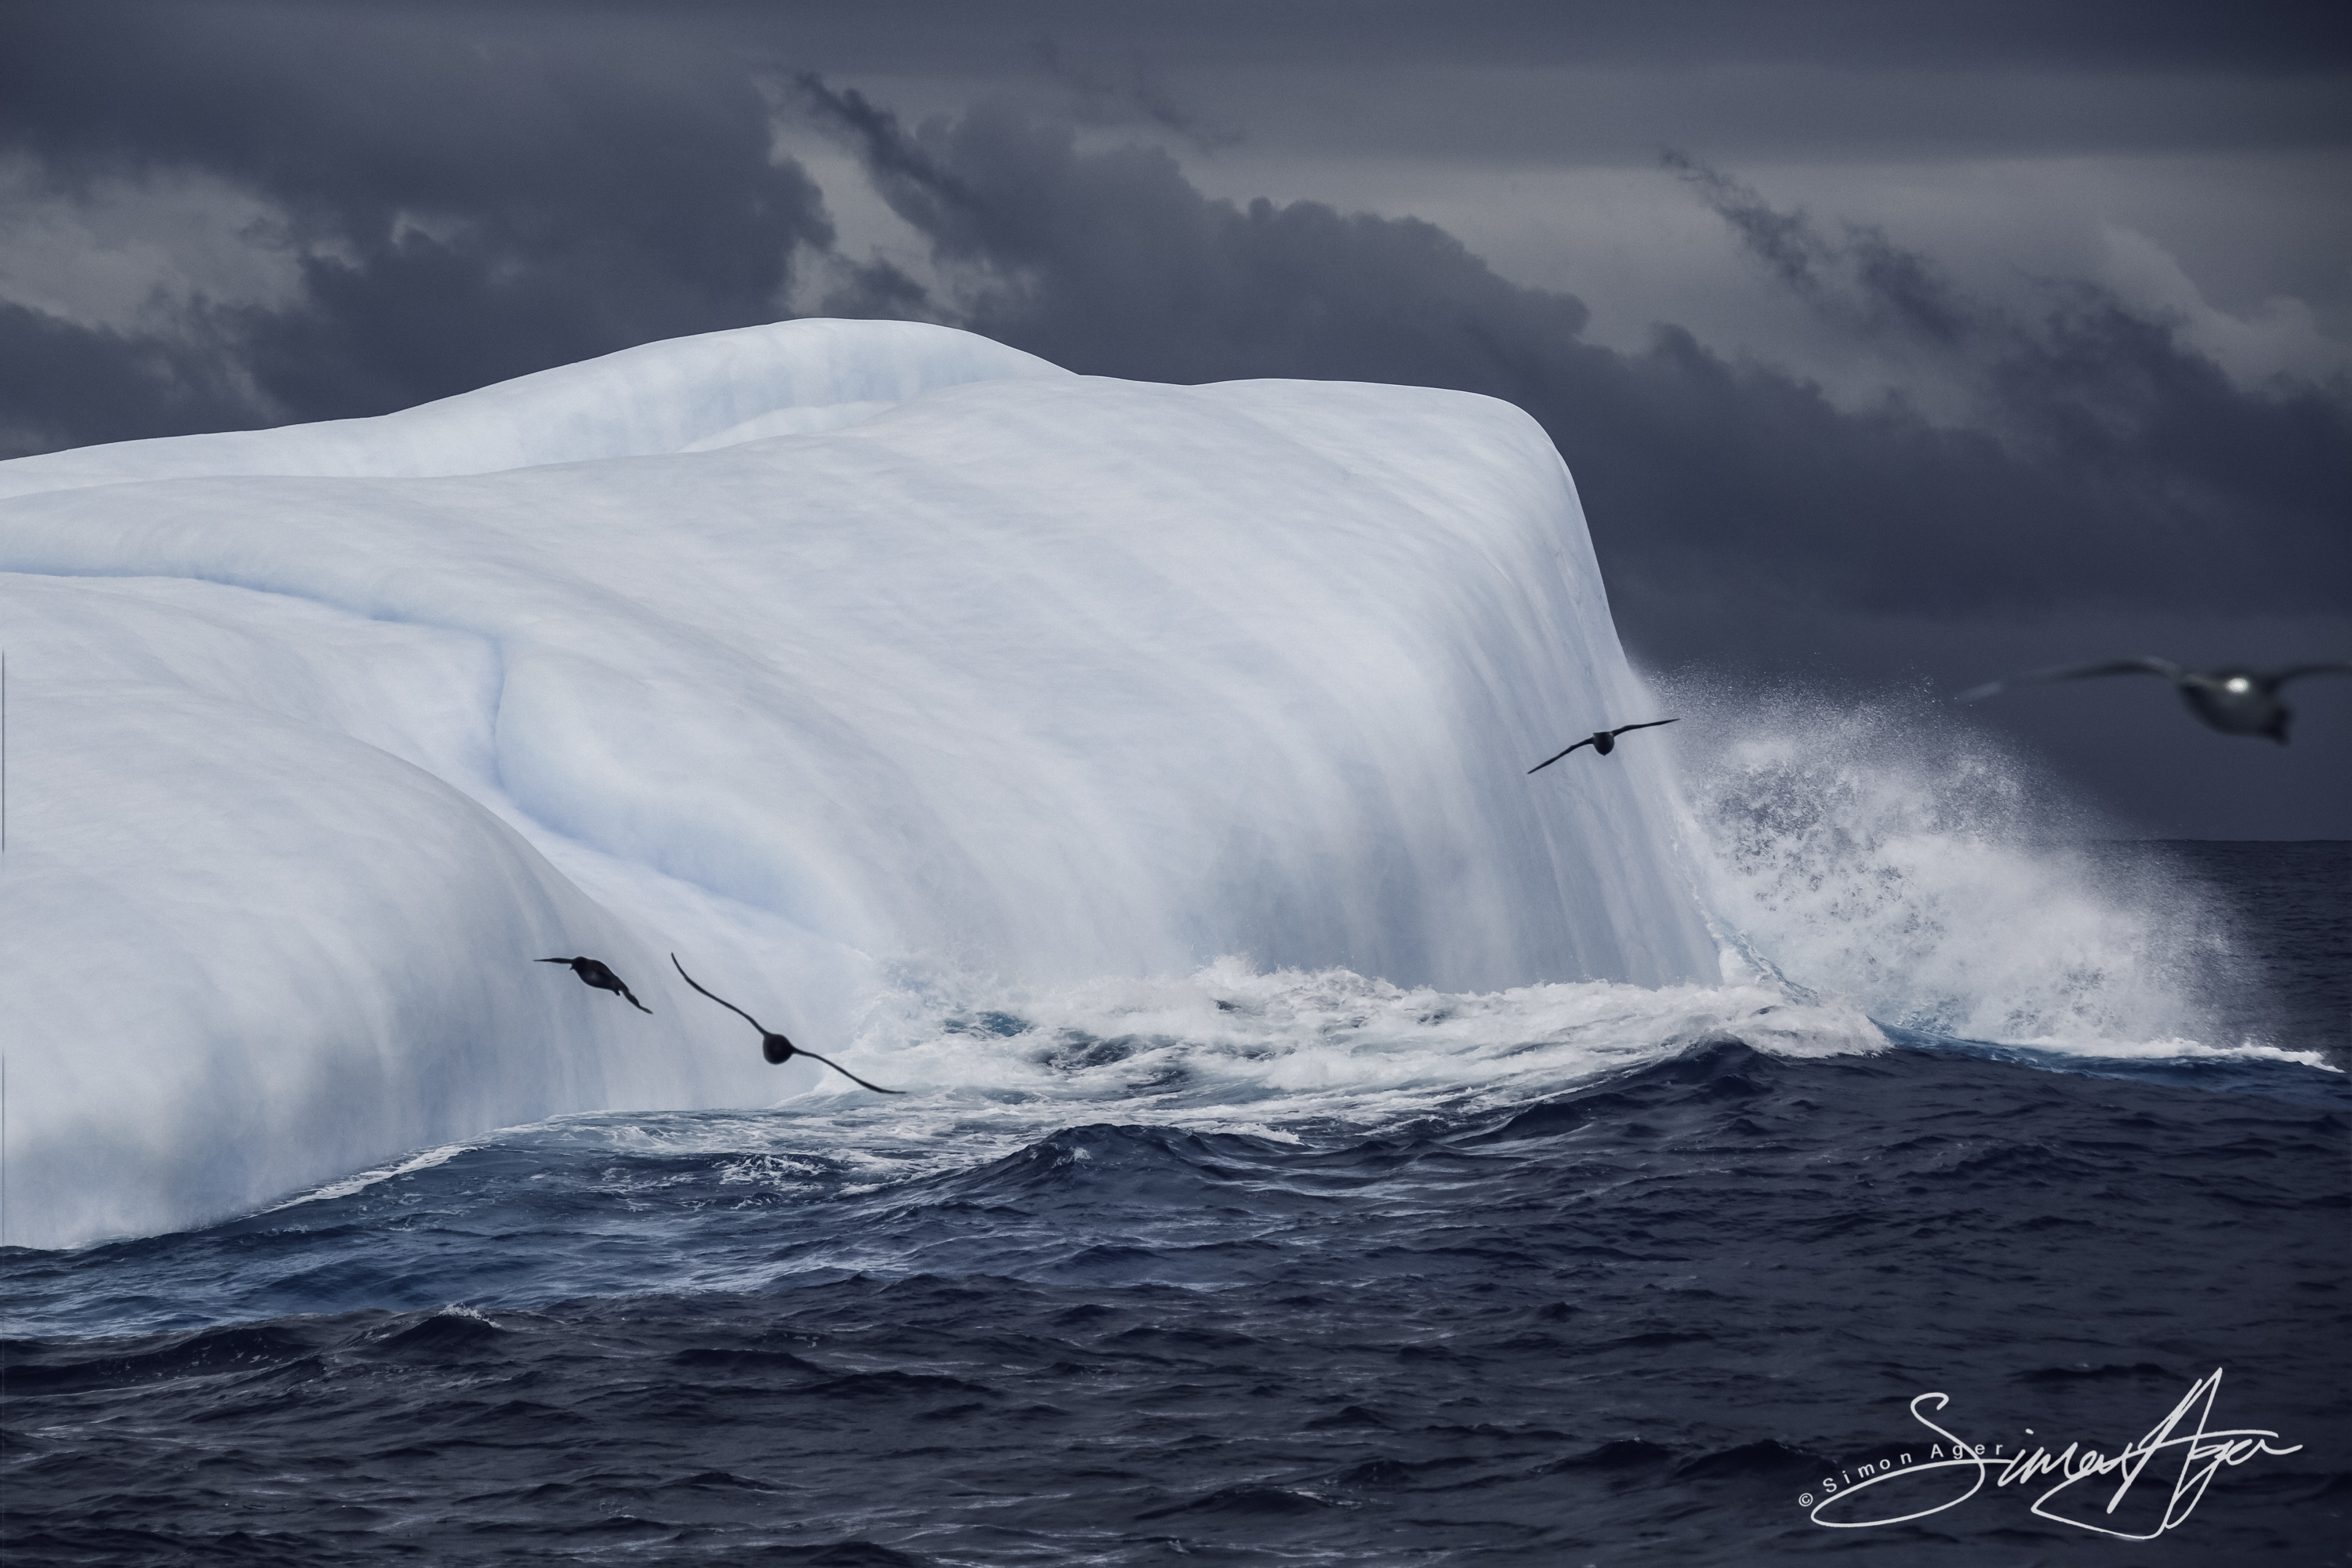 170214-SA-Snow-petrels-pass-in-front-of-iceberg-001-2